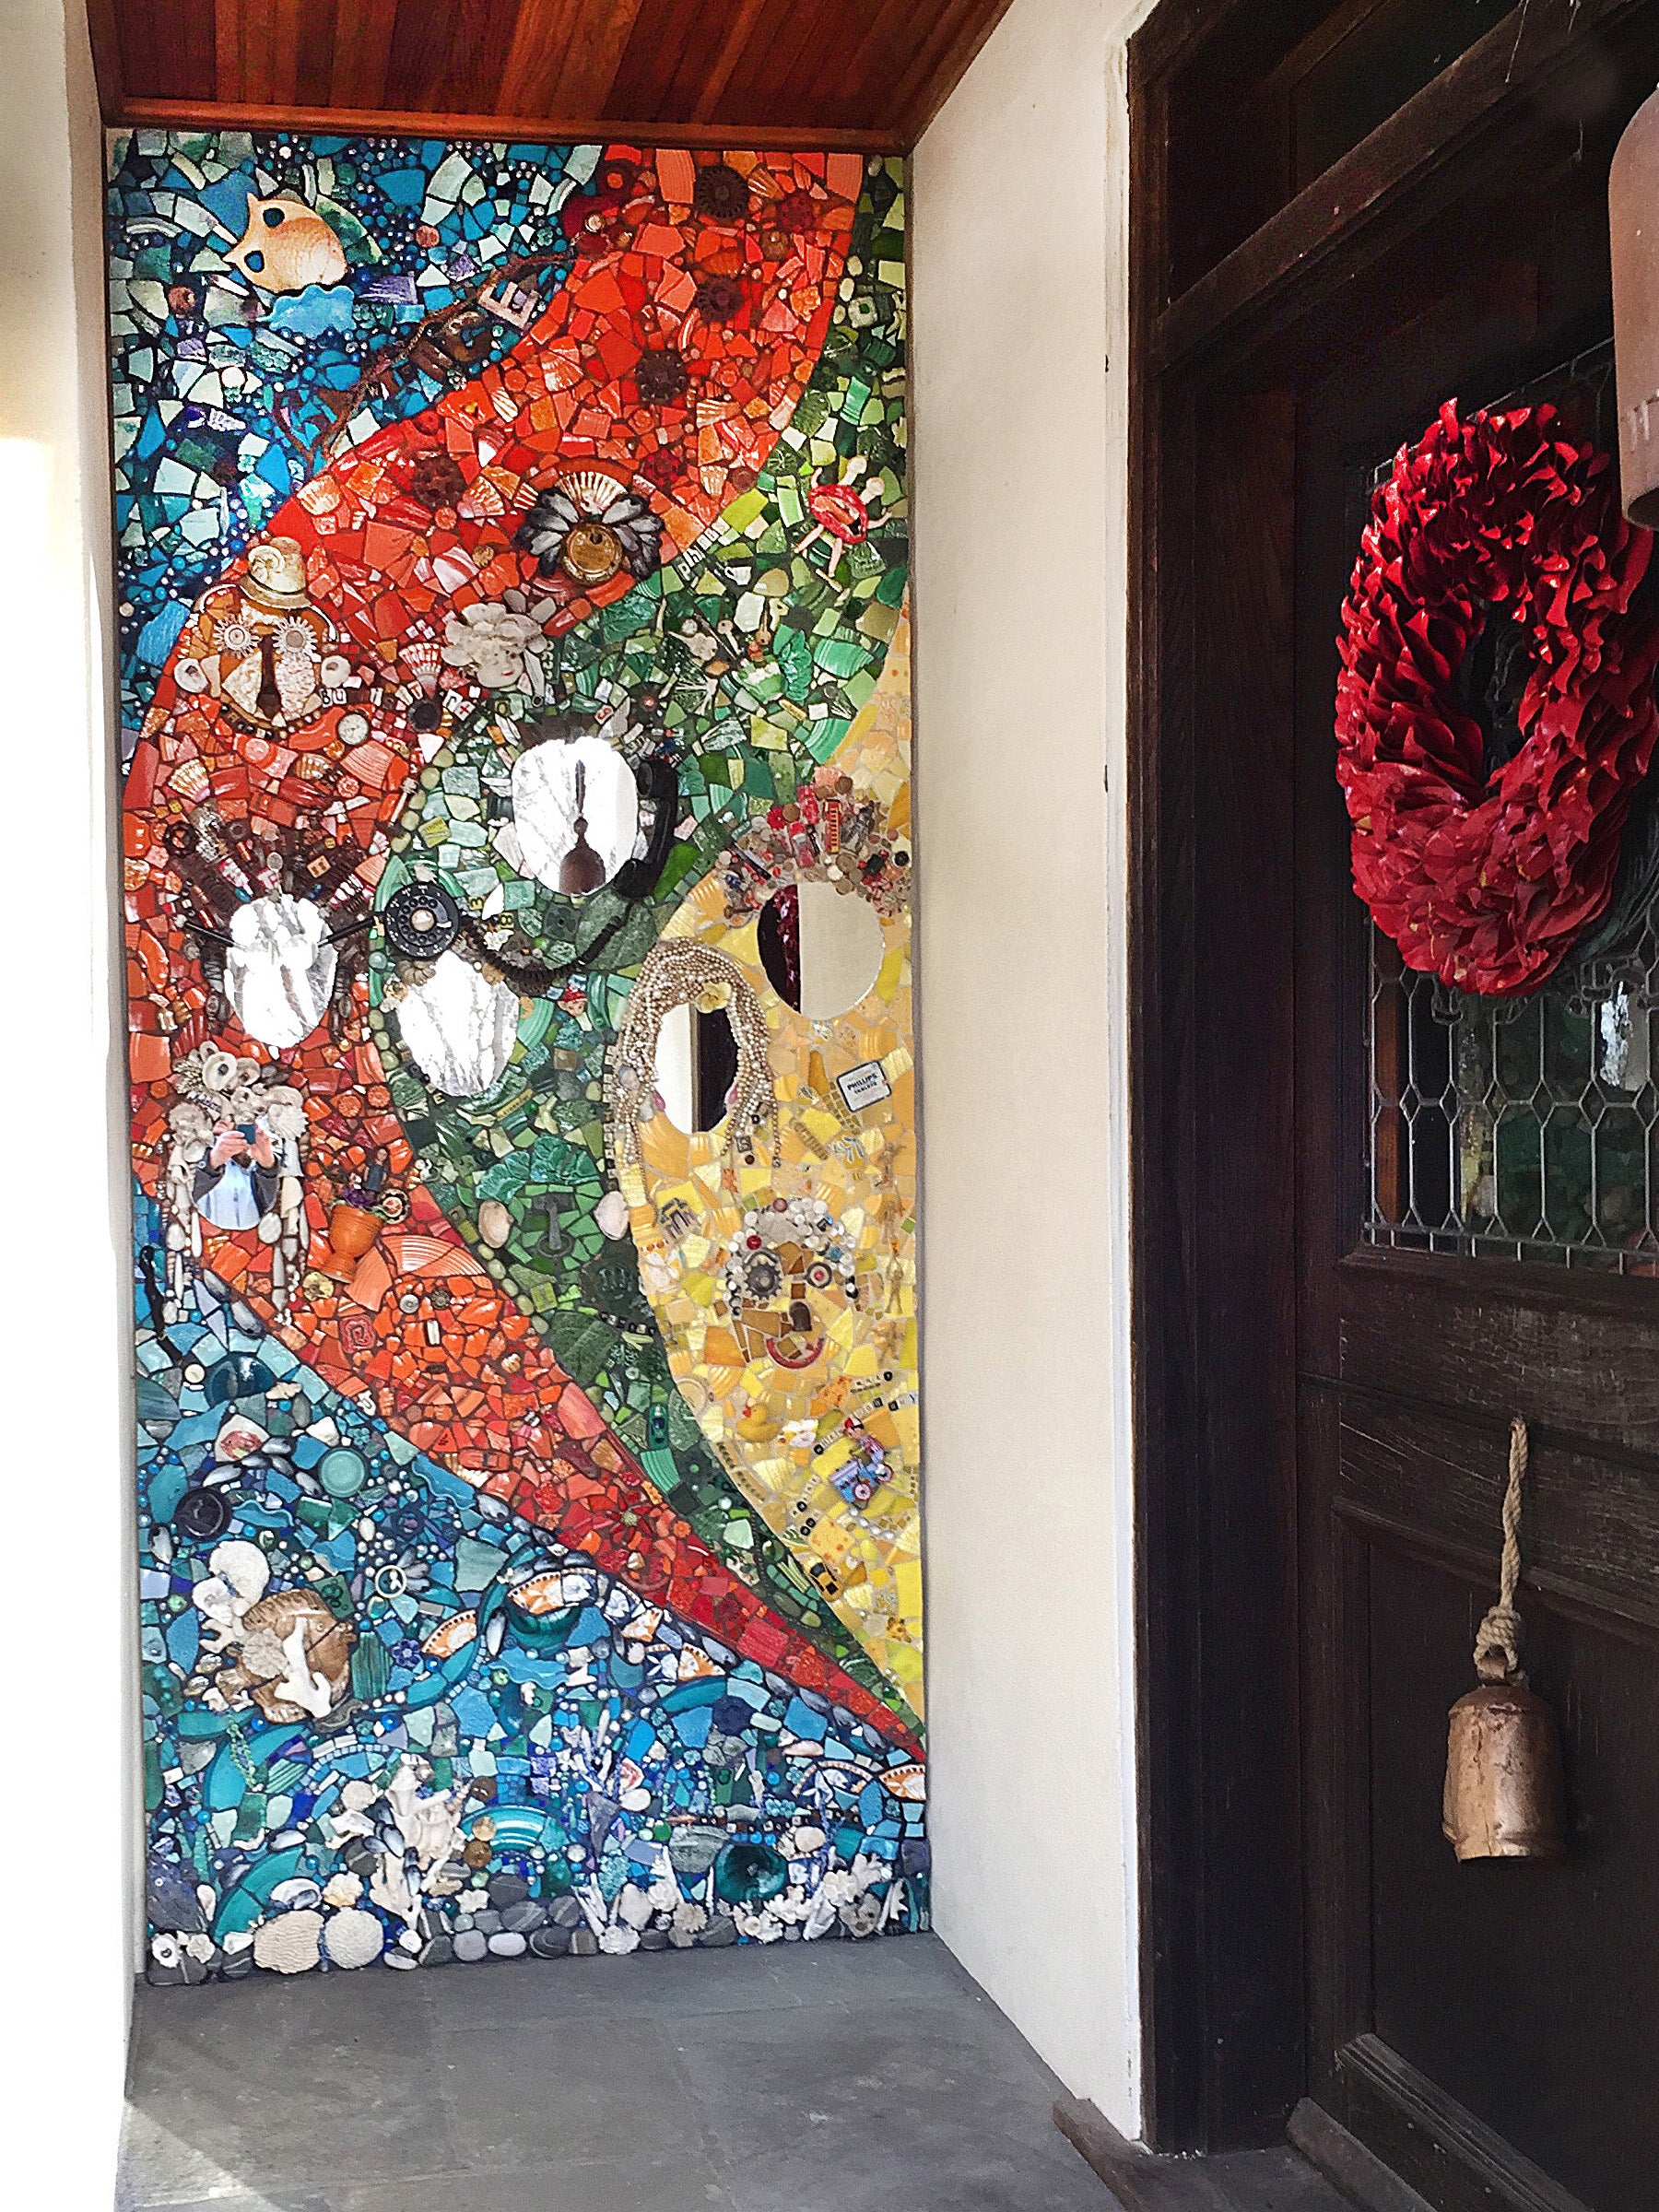 Entryway Mosaic, Mount Kisco, N.Y. by Cathleen Newsham